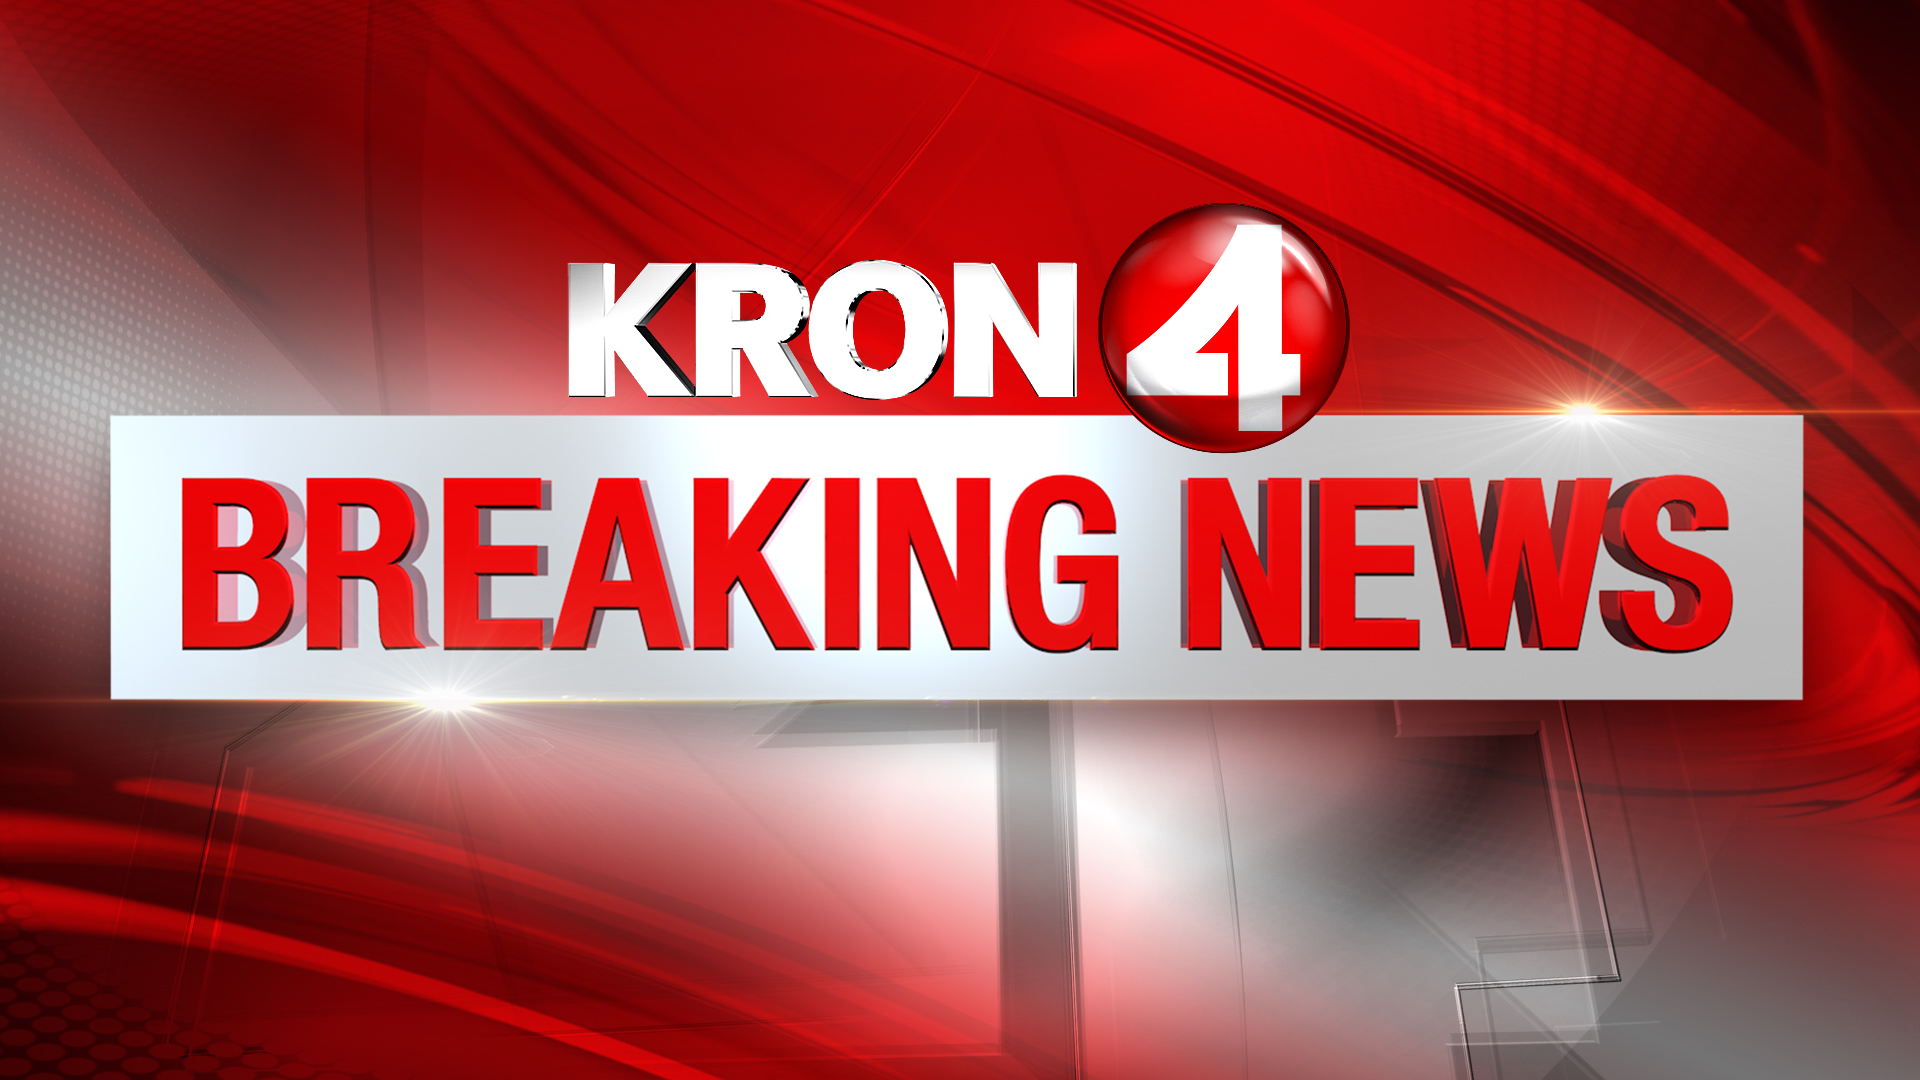 graphic FS KRON4 Breaking News_1523150809456.jpg.jpg